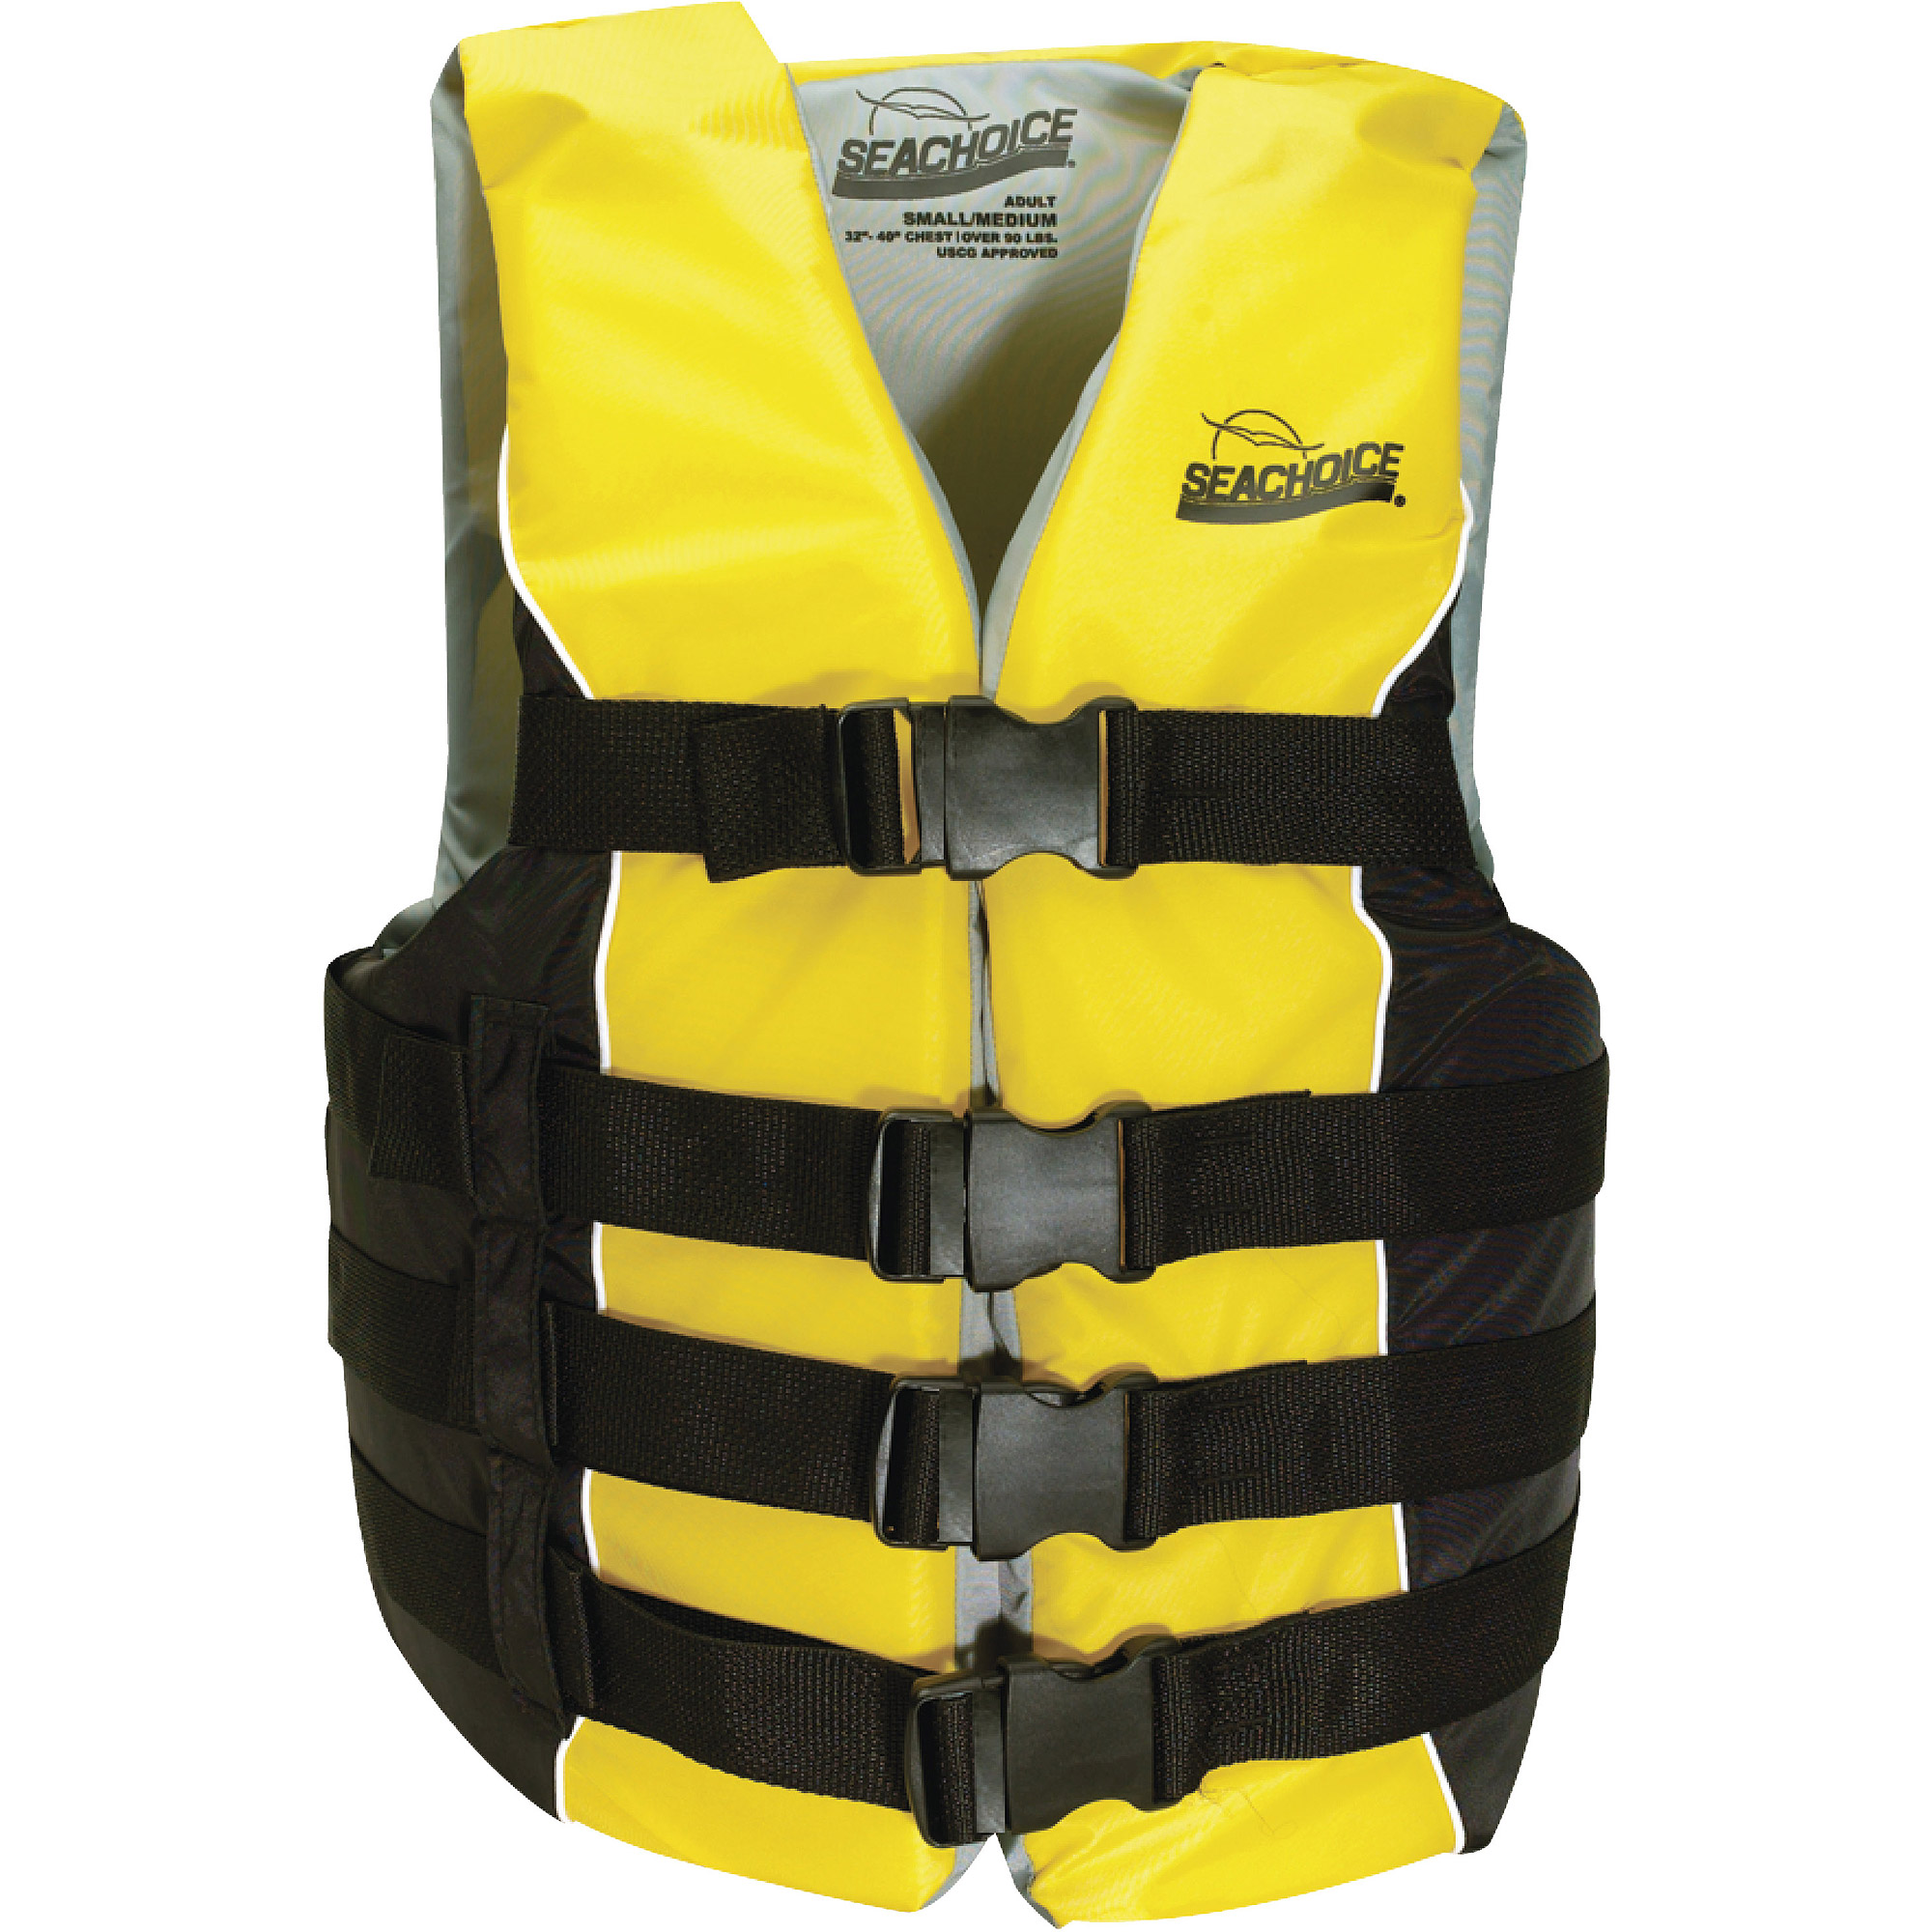 Seachoice Deluxe Type III 4-Belt Yellow Black Adult Ski Vest for 90 lbs and Up by Seachoice